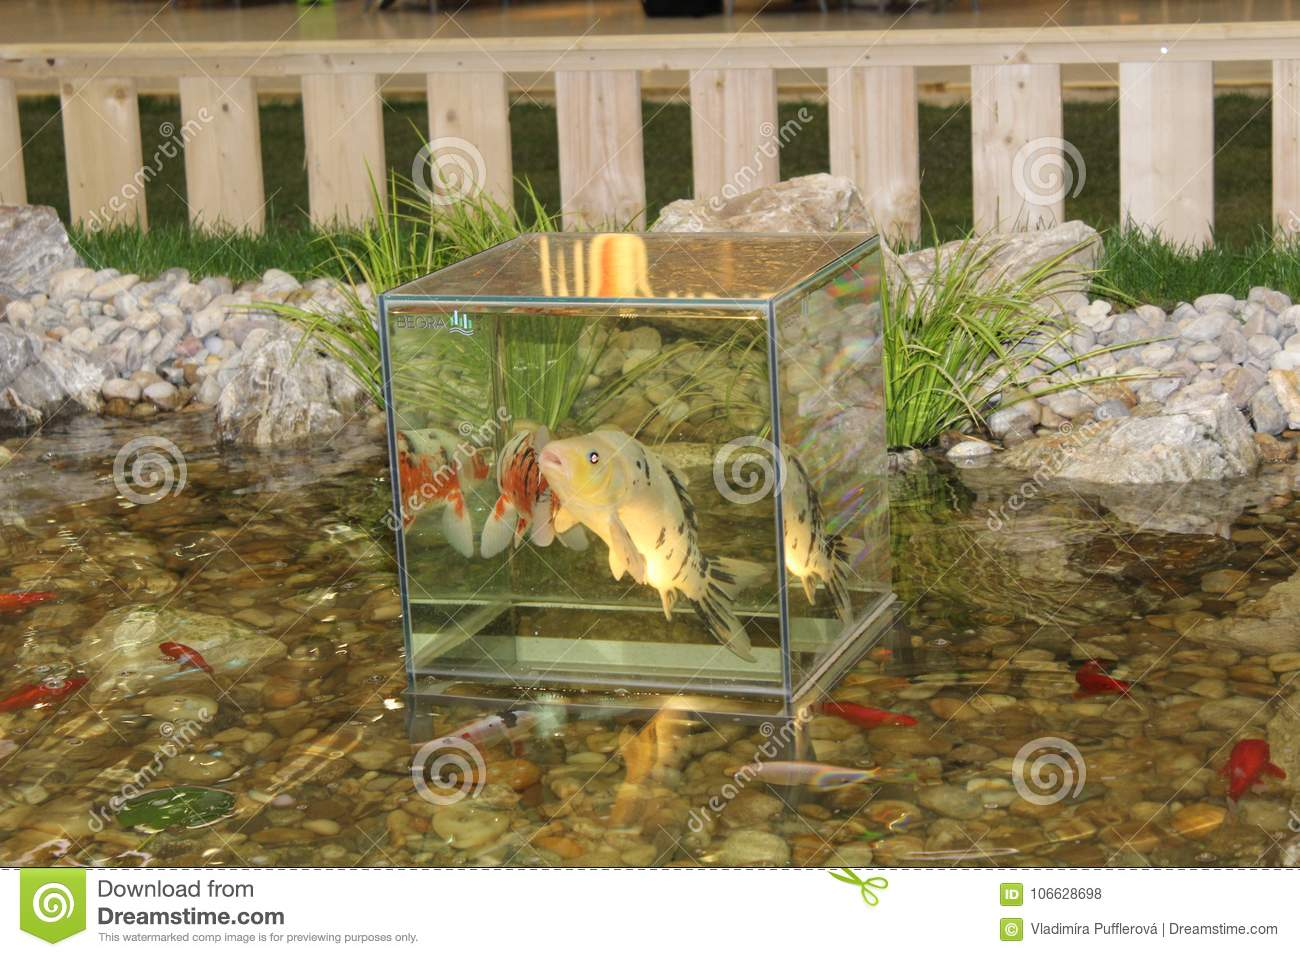 Glass Cube Enabling The Pond Fish To Watch The World Around The Pond Stock Photo Image Of Aquarium Stone 106628698